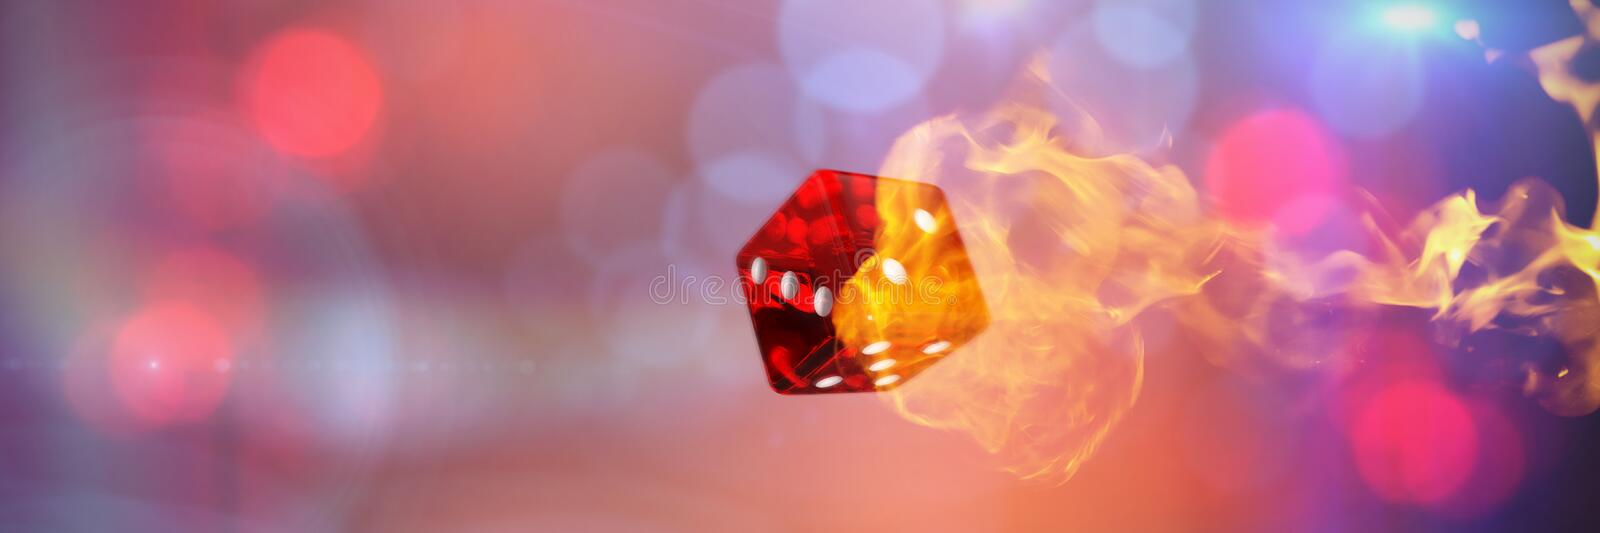 Composite image of computer graphic image of 3d dice. Computer graphic image of 3D dice against fire royalty free illustration